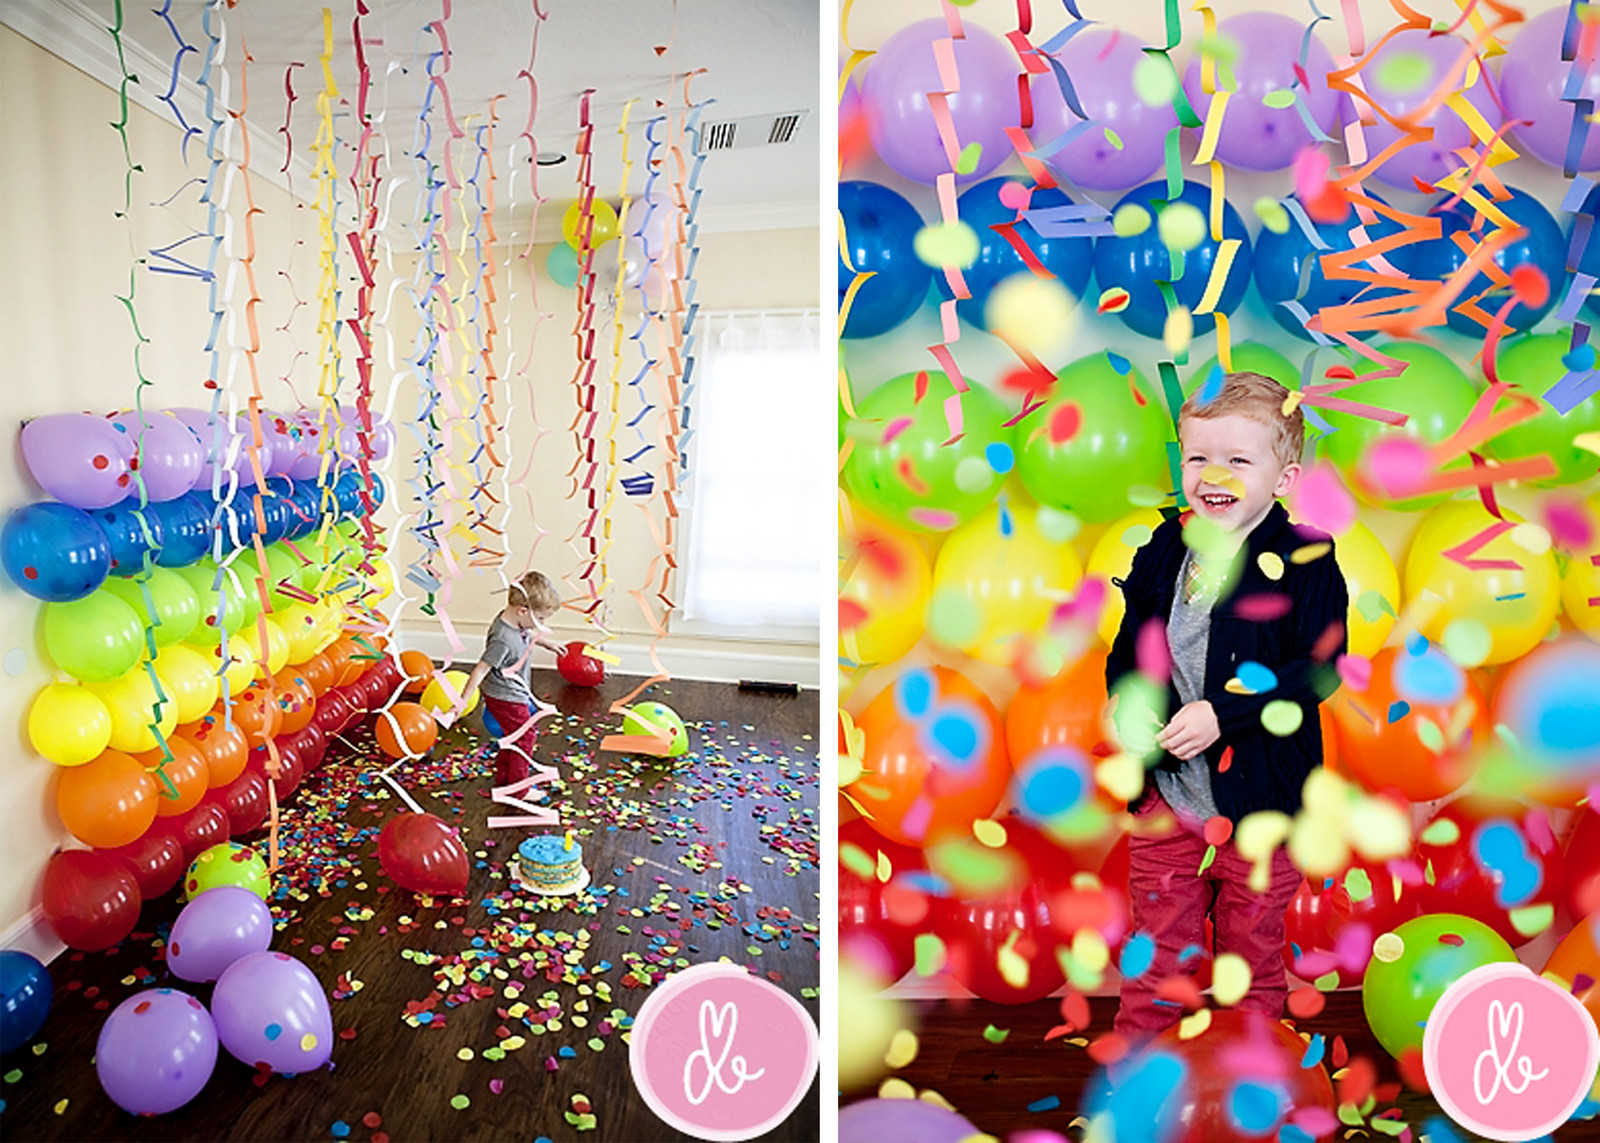 Best ideas about Kids Birthday Party Decorations . Save or Pin How To Decorate Birthday Party At Home Kids Art Now.